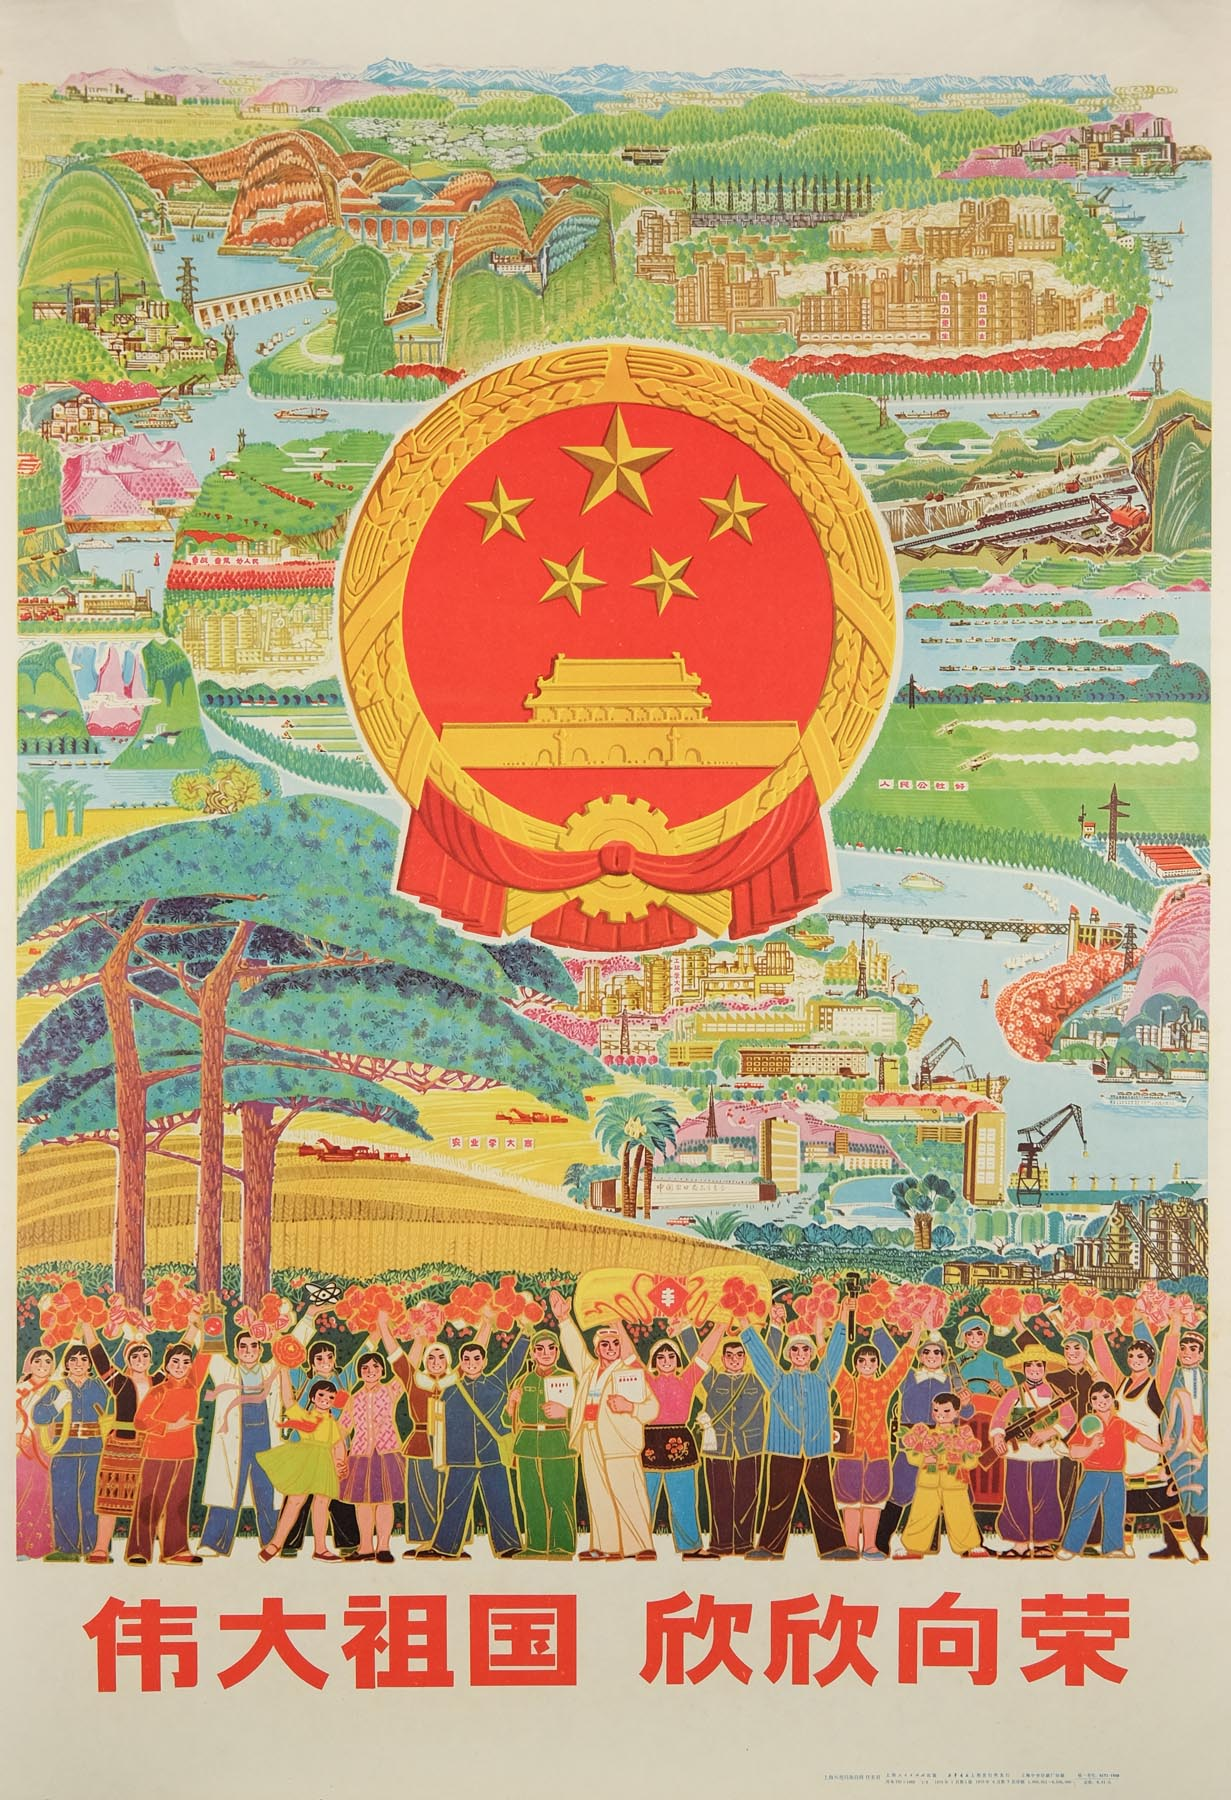 image of the original vintage 1975 Chinese communist propaganda poster titled Our great motherland is flourishing